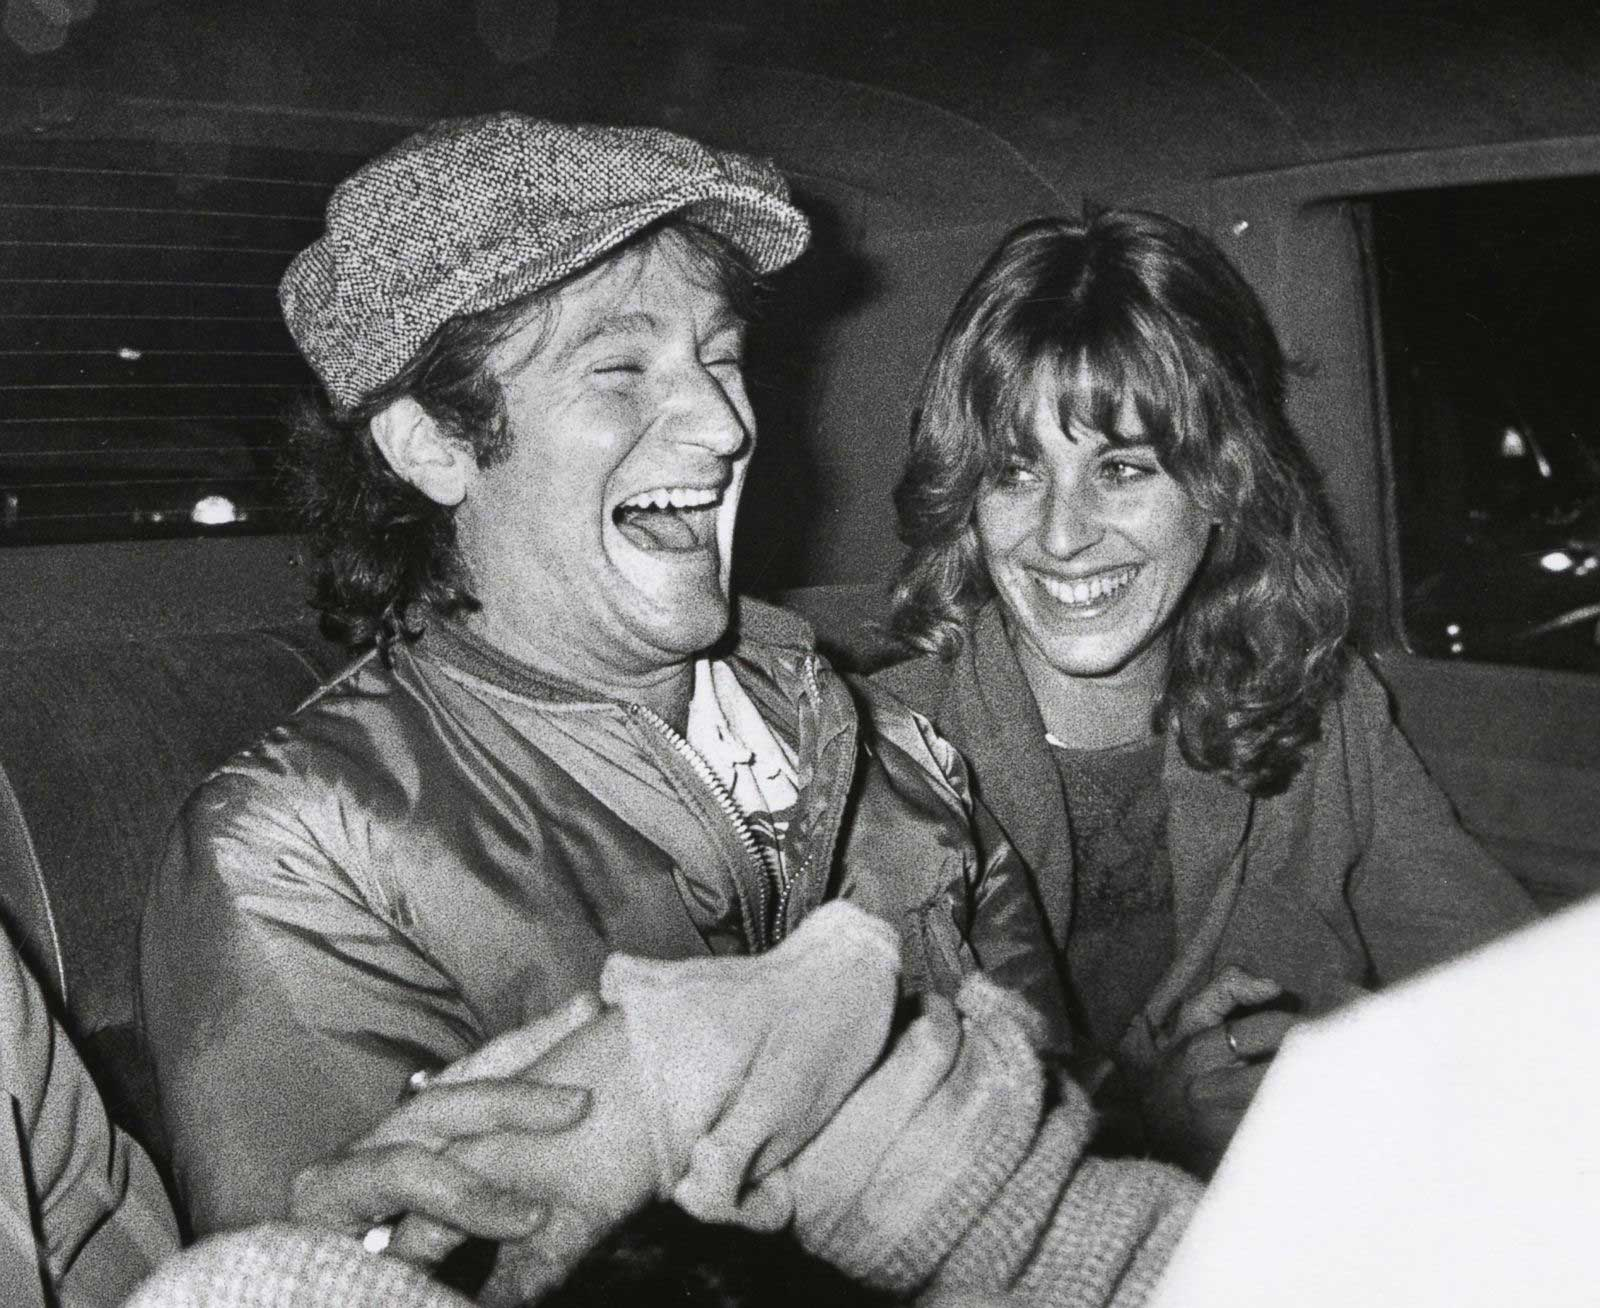 He Loved Women Robin Williams First Wife Valerie Velardi Says She Tolerated His Many Infidelities During Their Marriage Meaww Robin williams, as a 7 year old, with his mother laurie williams. robin williams first wife valerie